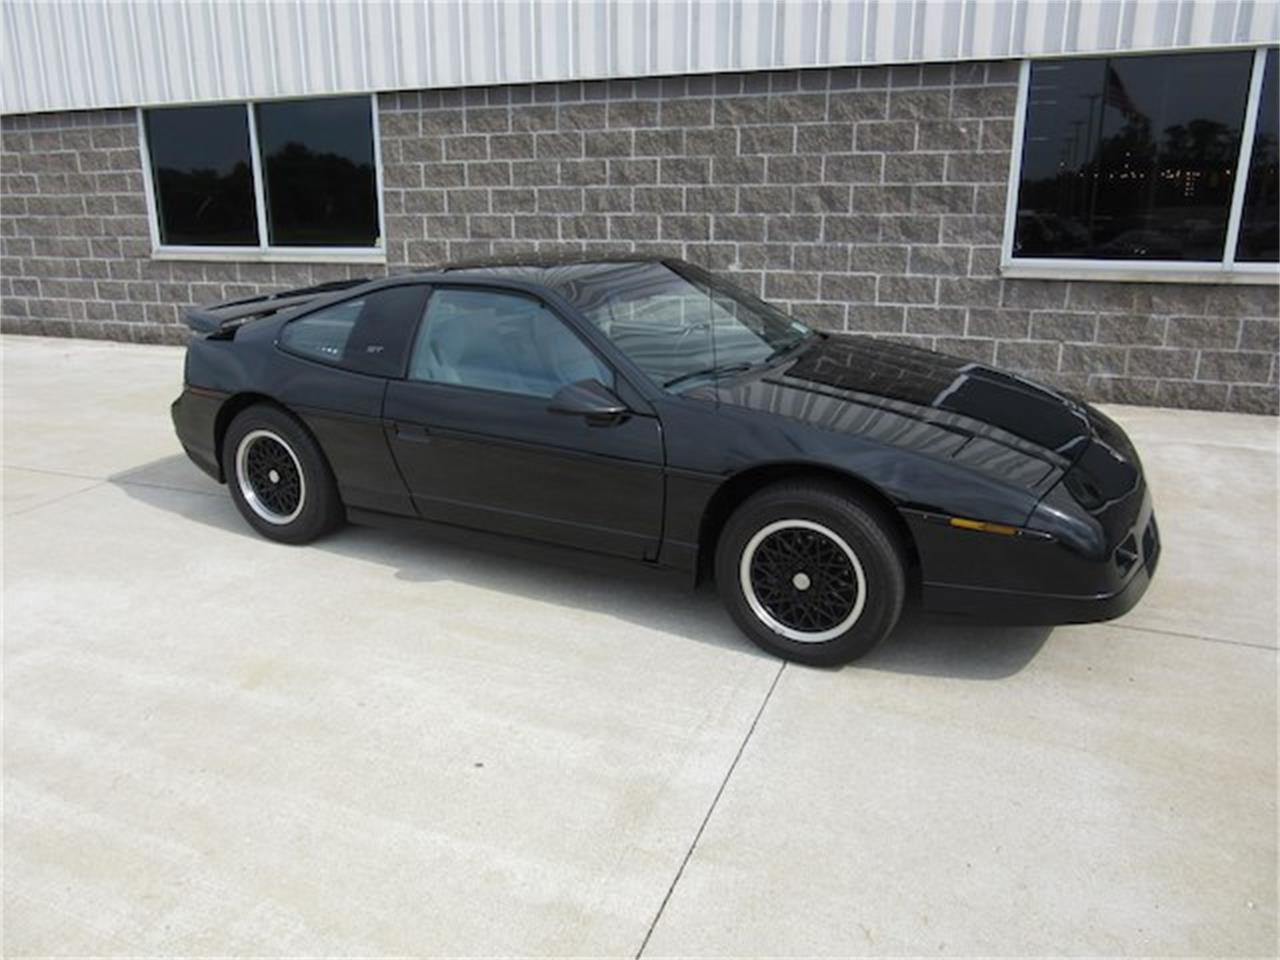 Large Picture of 1988 Fiero located in Greenwood Indiana - $15,900.00 Offered by Ray Skillman Classic Cars - NVQQ